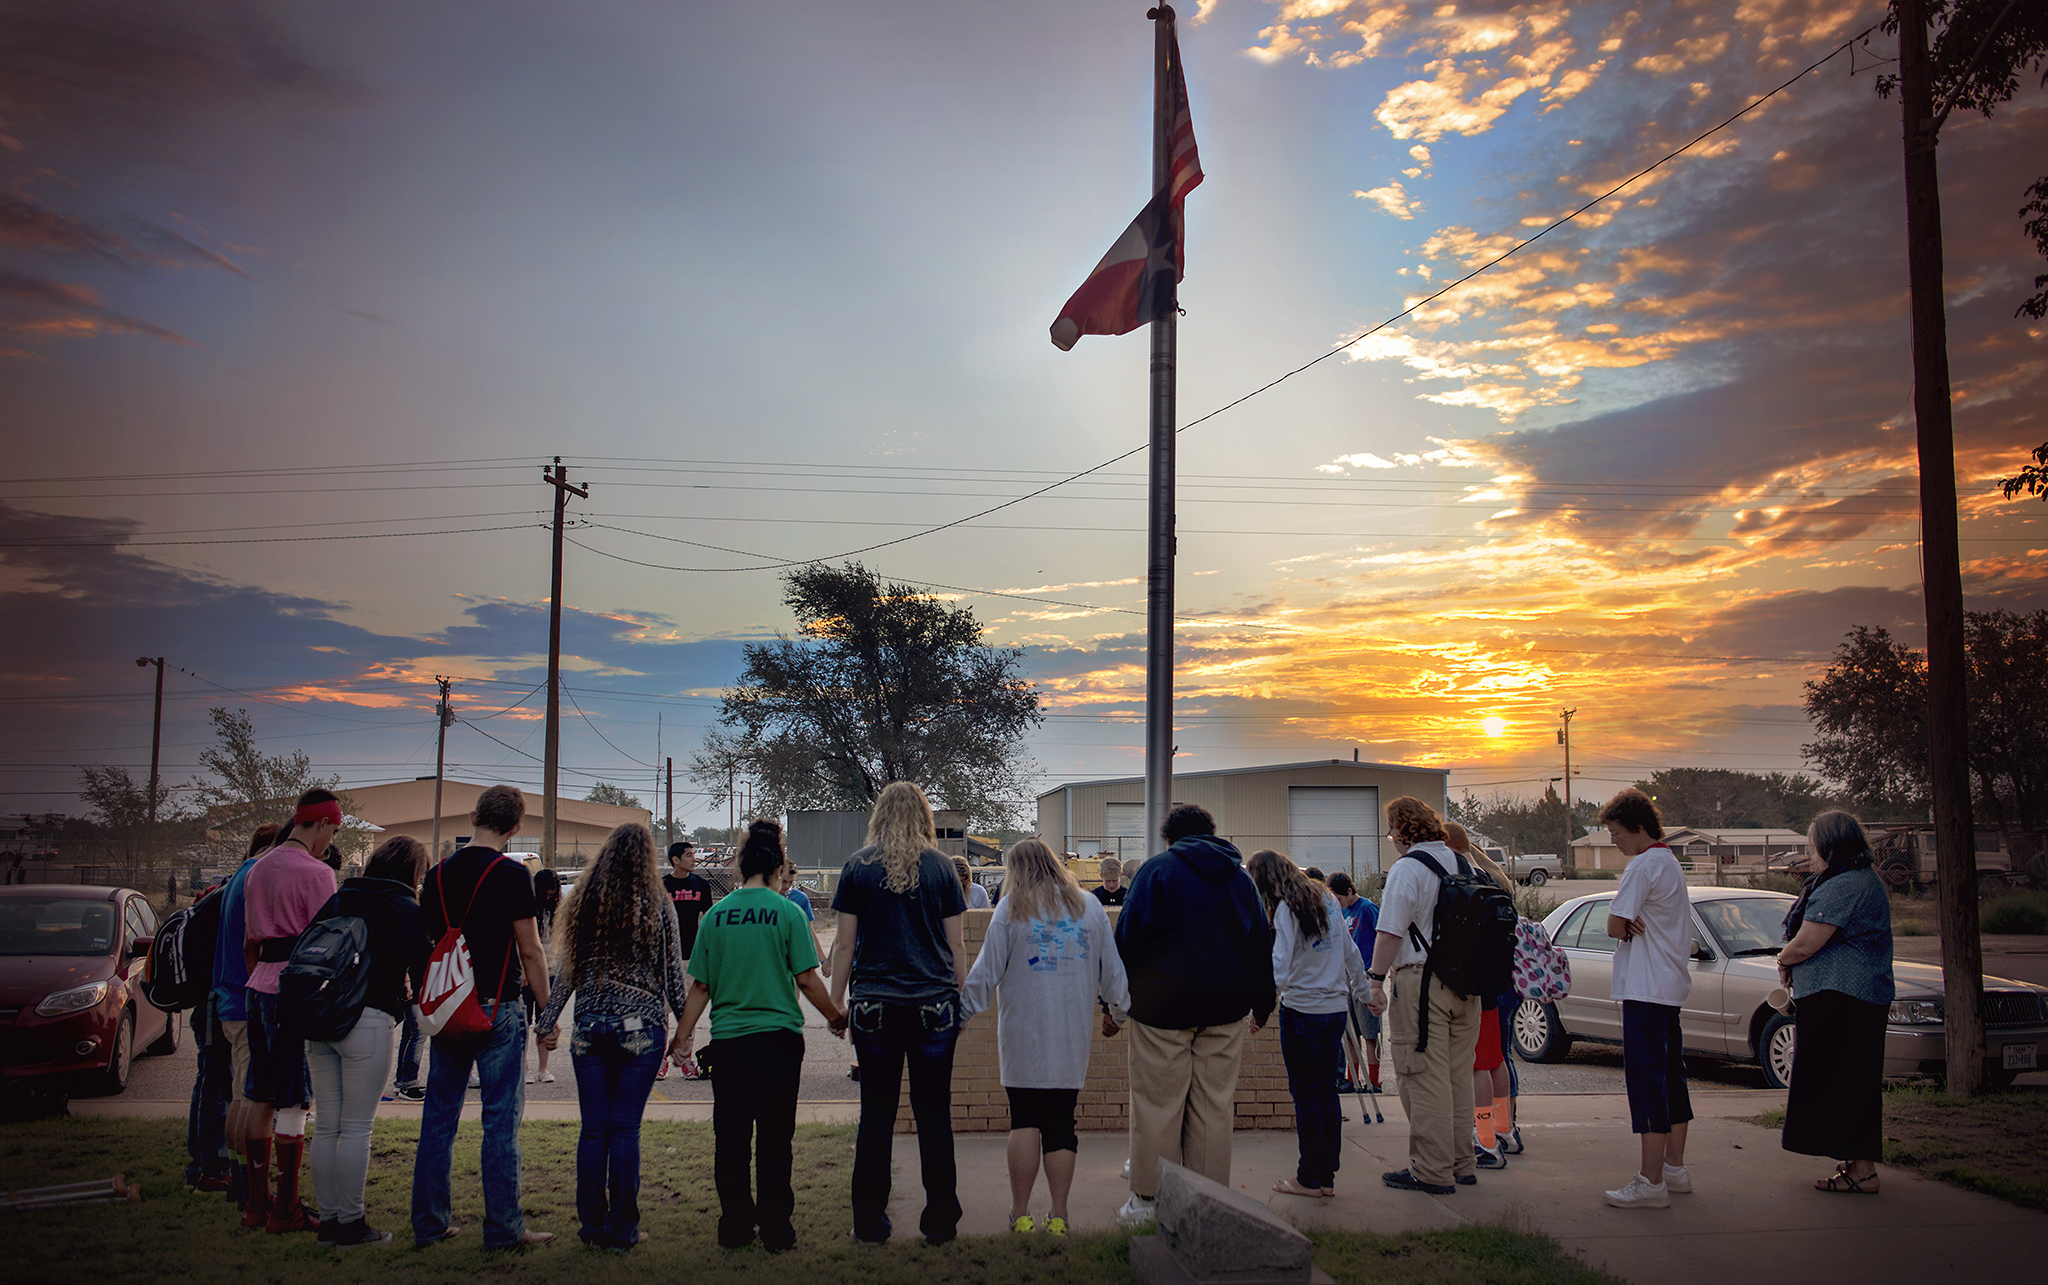 See you at the Pole, sunrise, flag, students praying